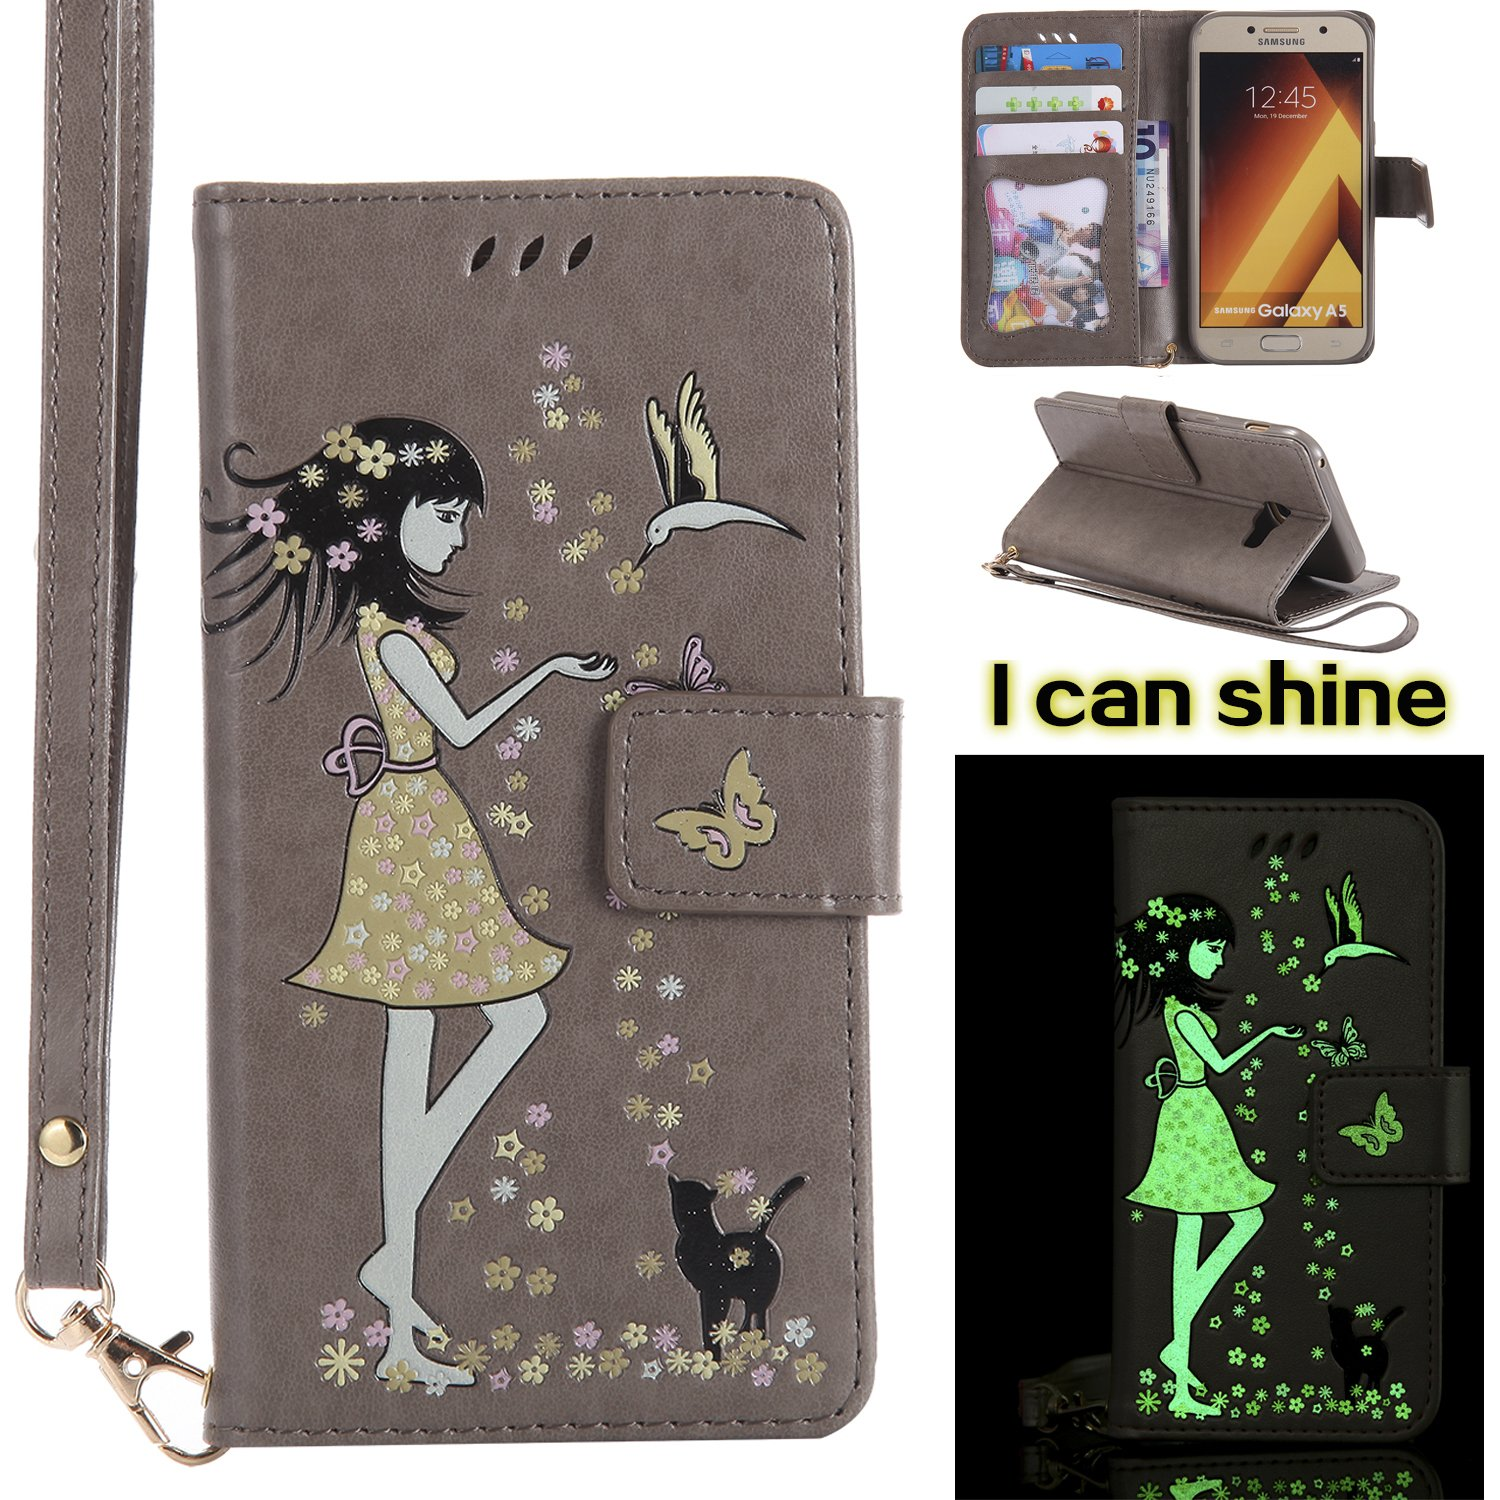 Flip Case Compatible with Samsung Galaxy A5 2017 FNBK Lather Wallet Flip Folio Luminous Glitter Woman Cat Design Cover Card Slot Stand Function Cash Pouch Shockproof Protective Case